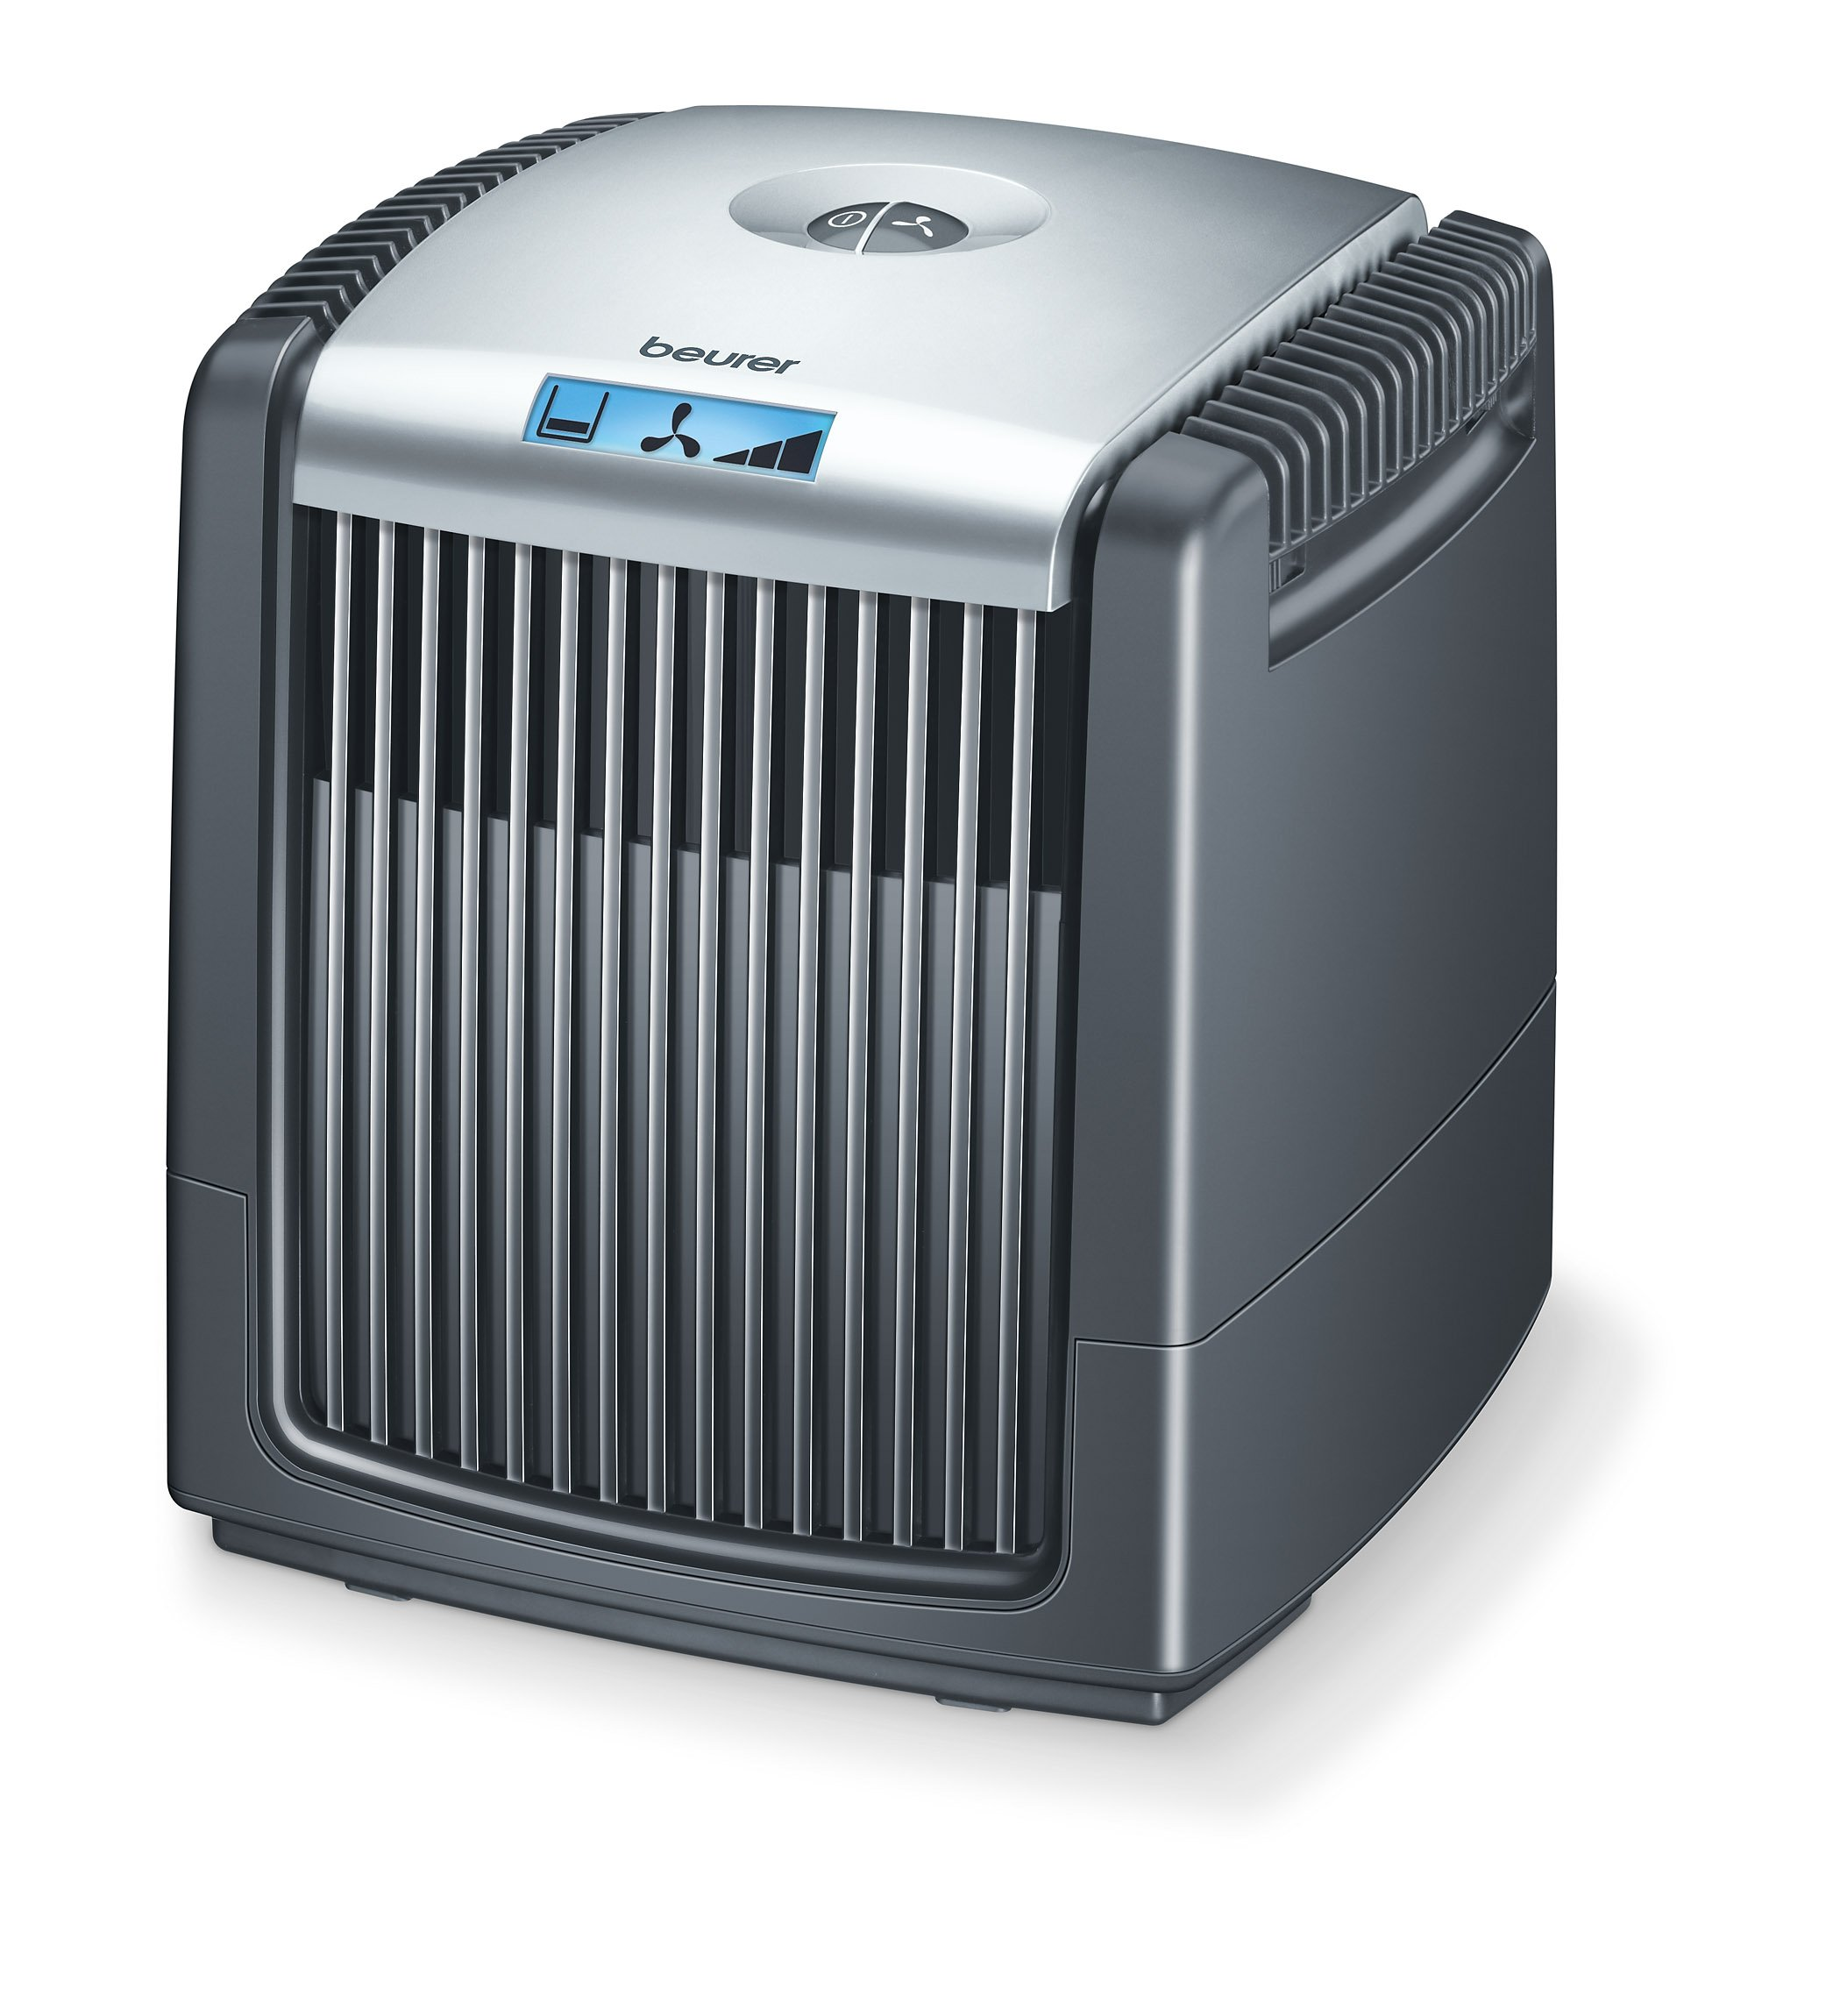 Beurer Airwasher and Air Humidifier, Air Purifier with Washable Filter for Clean Air, LW110